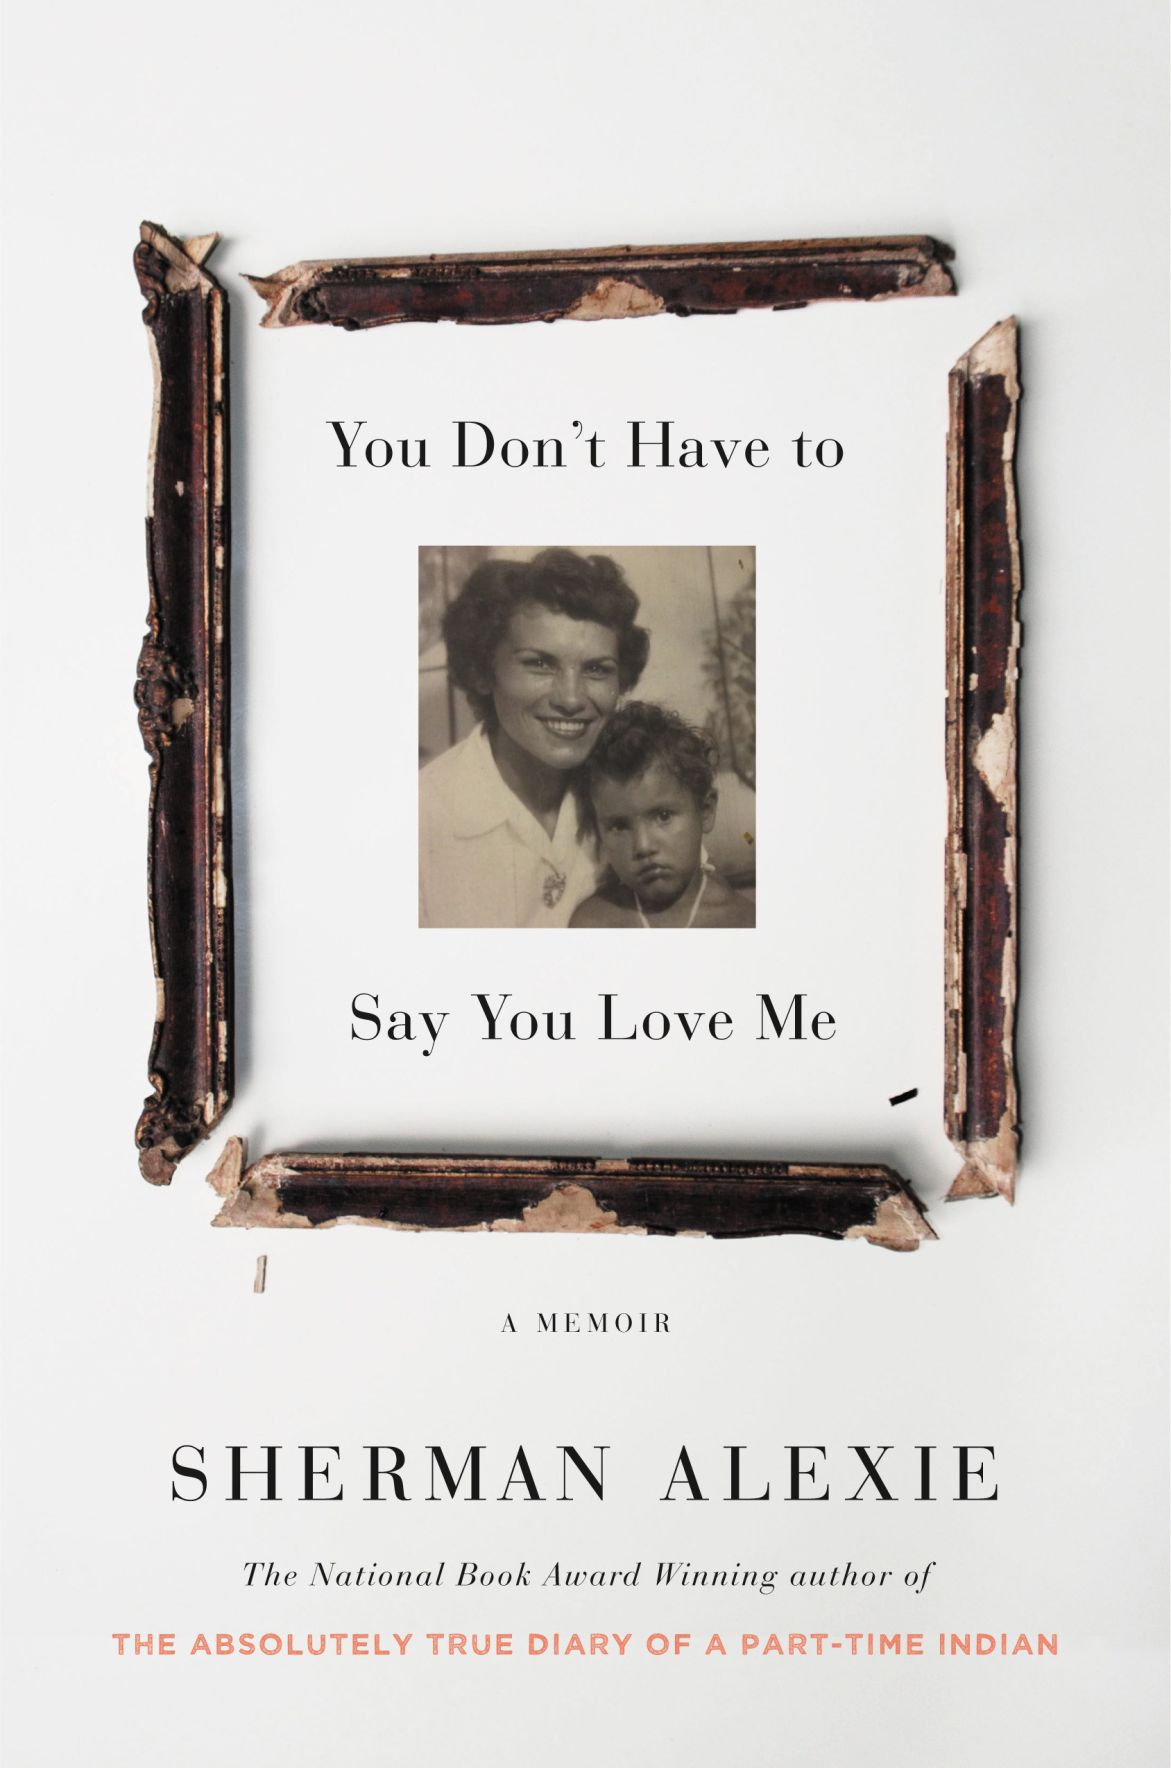 alexie and me 189557 results for sherman alexie superman and me narrow results: all results william faulkner the absolutely true diary of a part-time indian sherman alexie across five aprils irene http://www sparklife please log in first email password remember me log in create an.